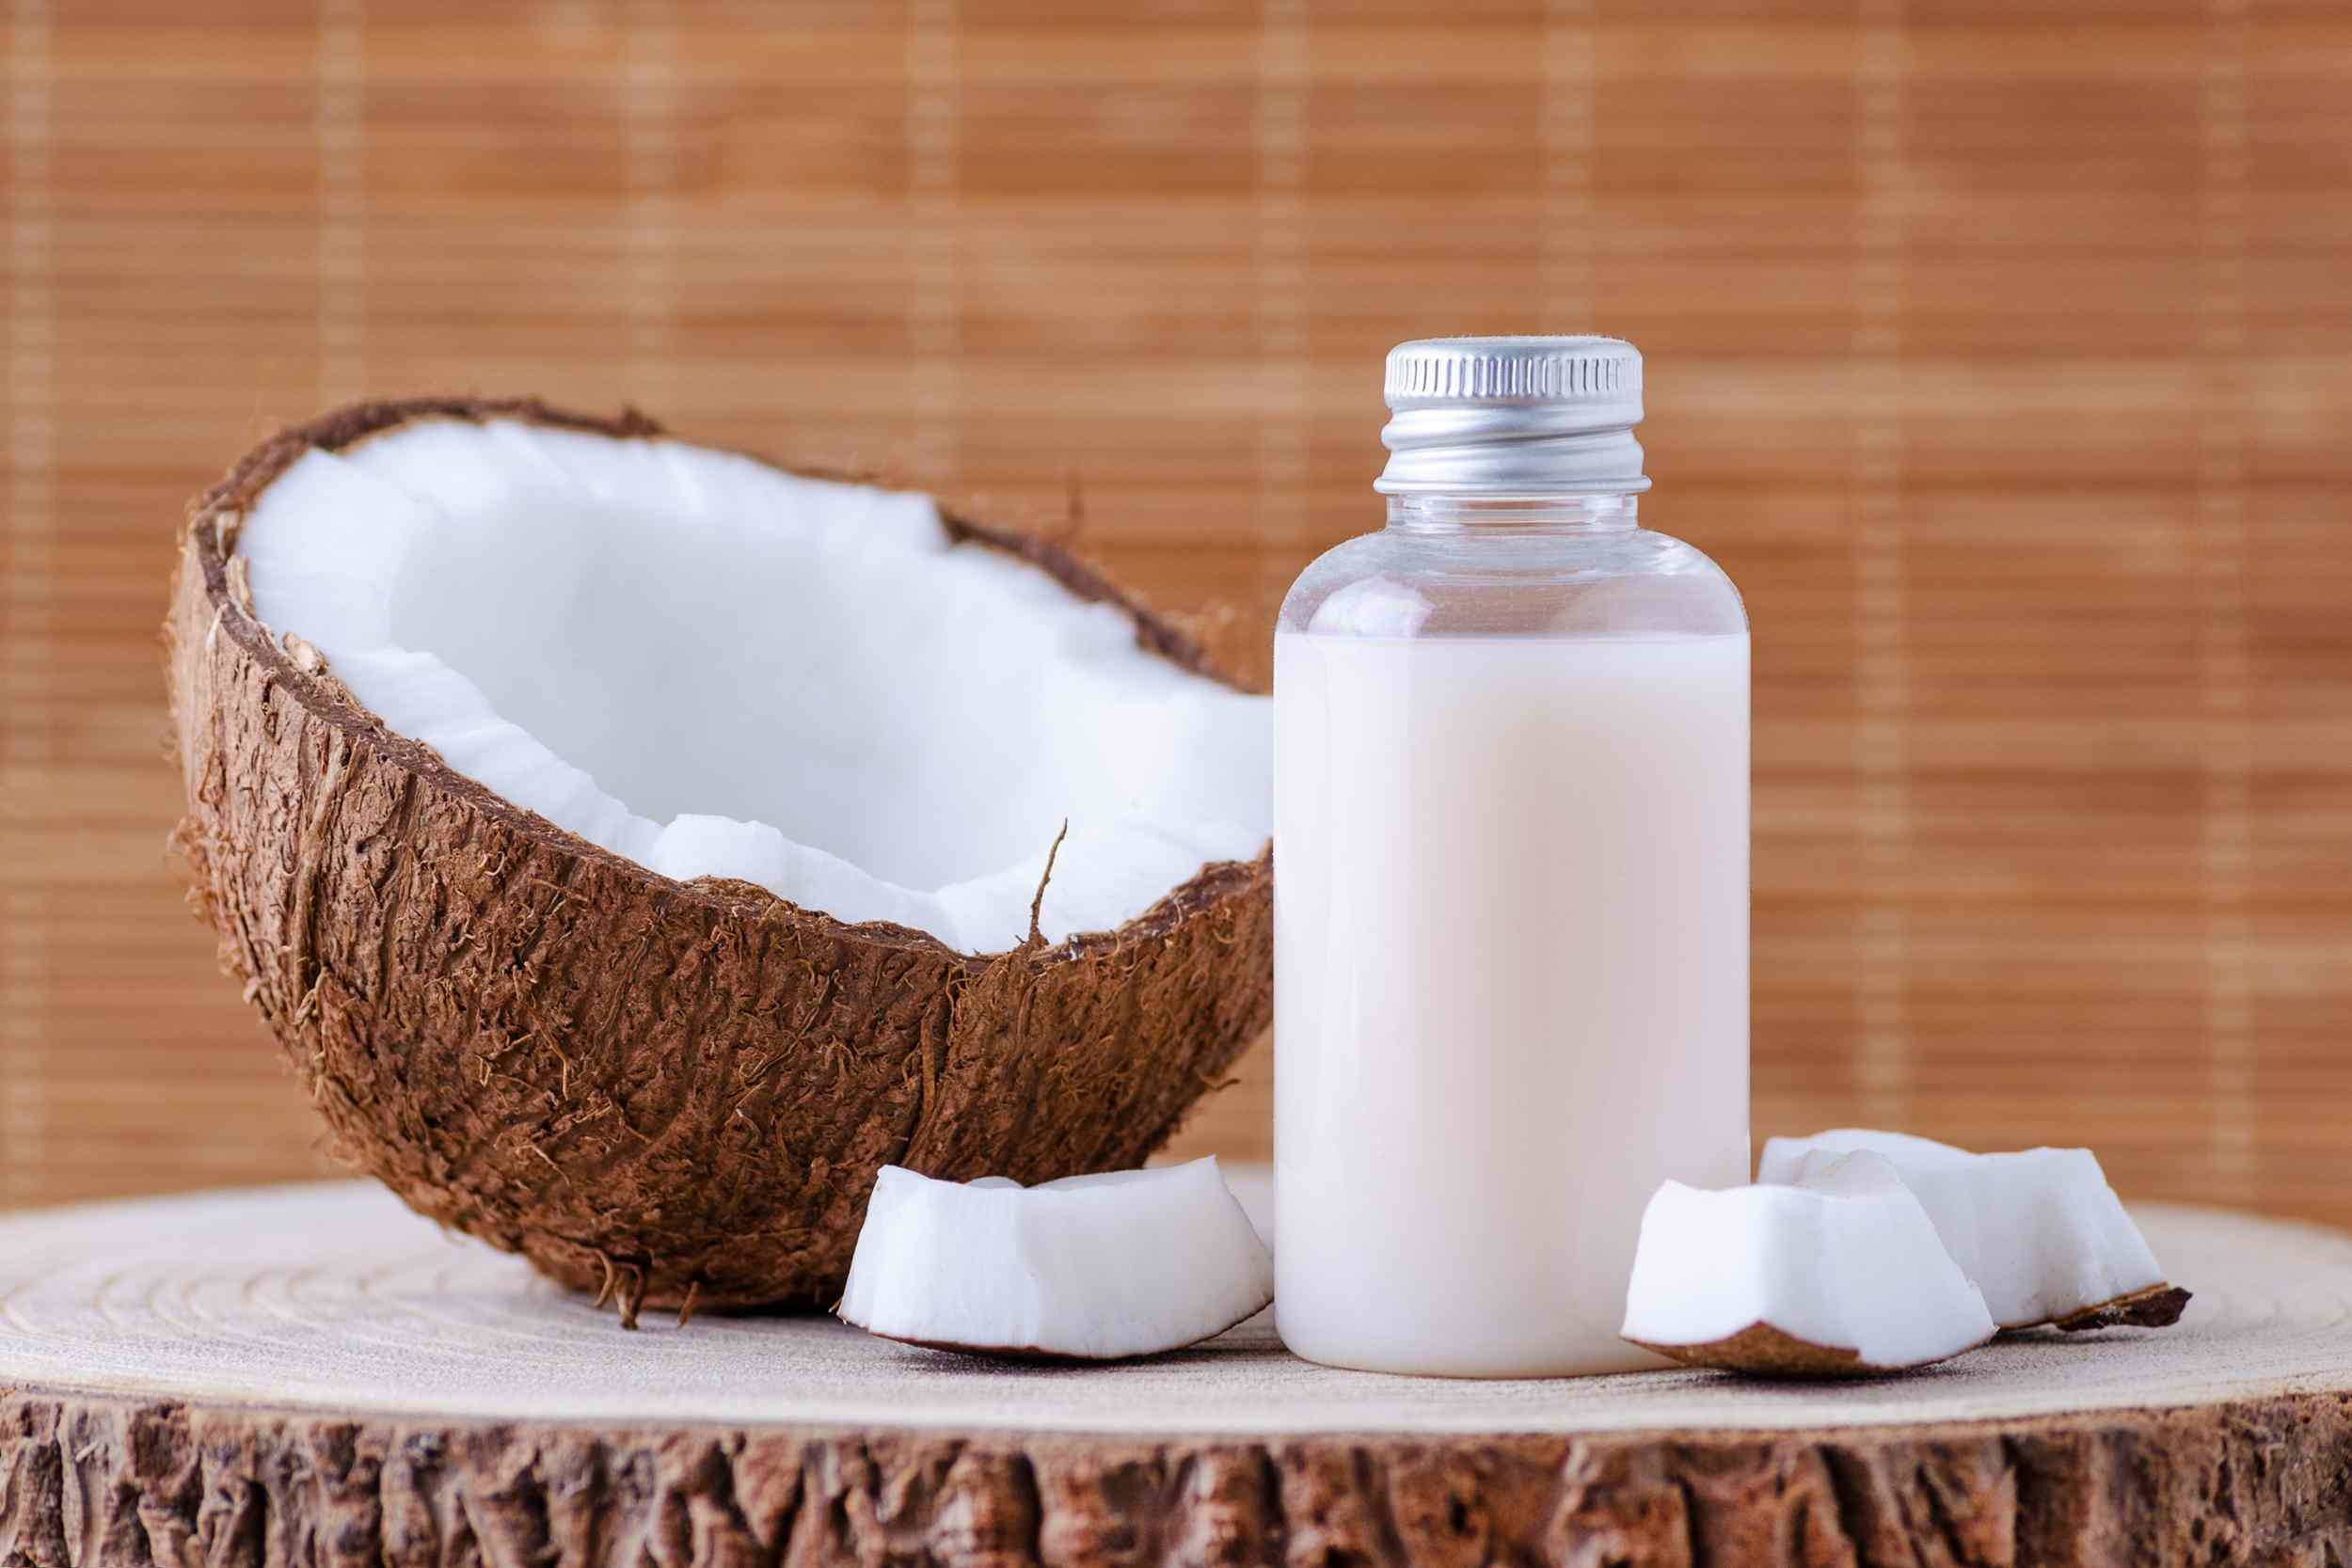 A clear bottle with white liquid next to half a coconut.